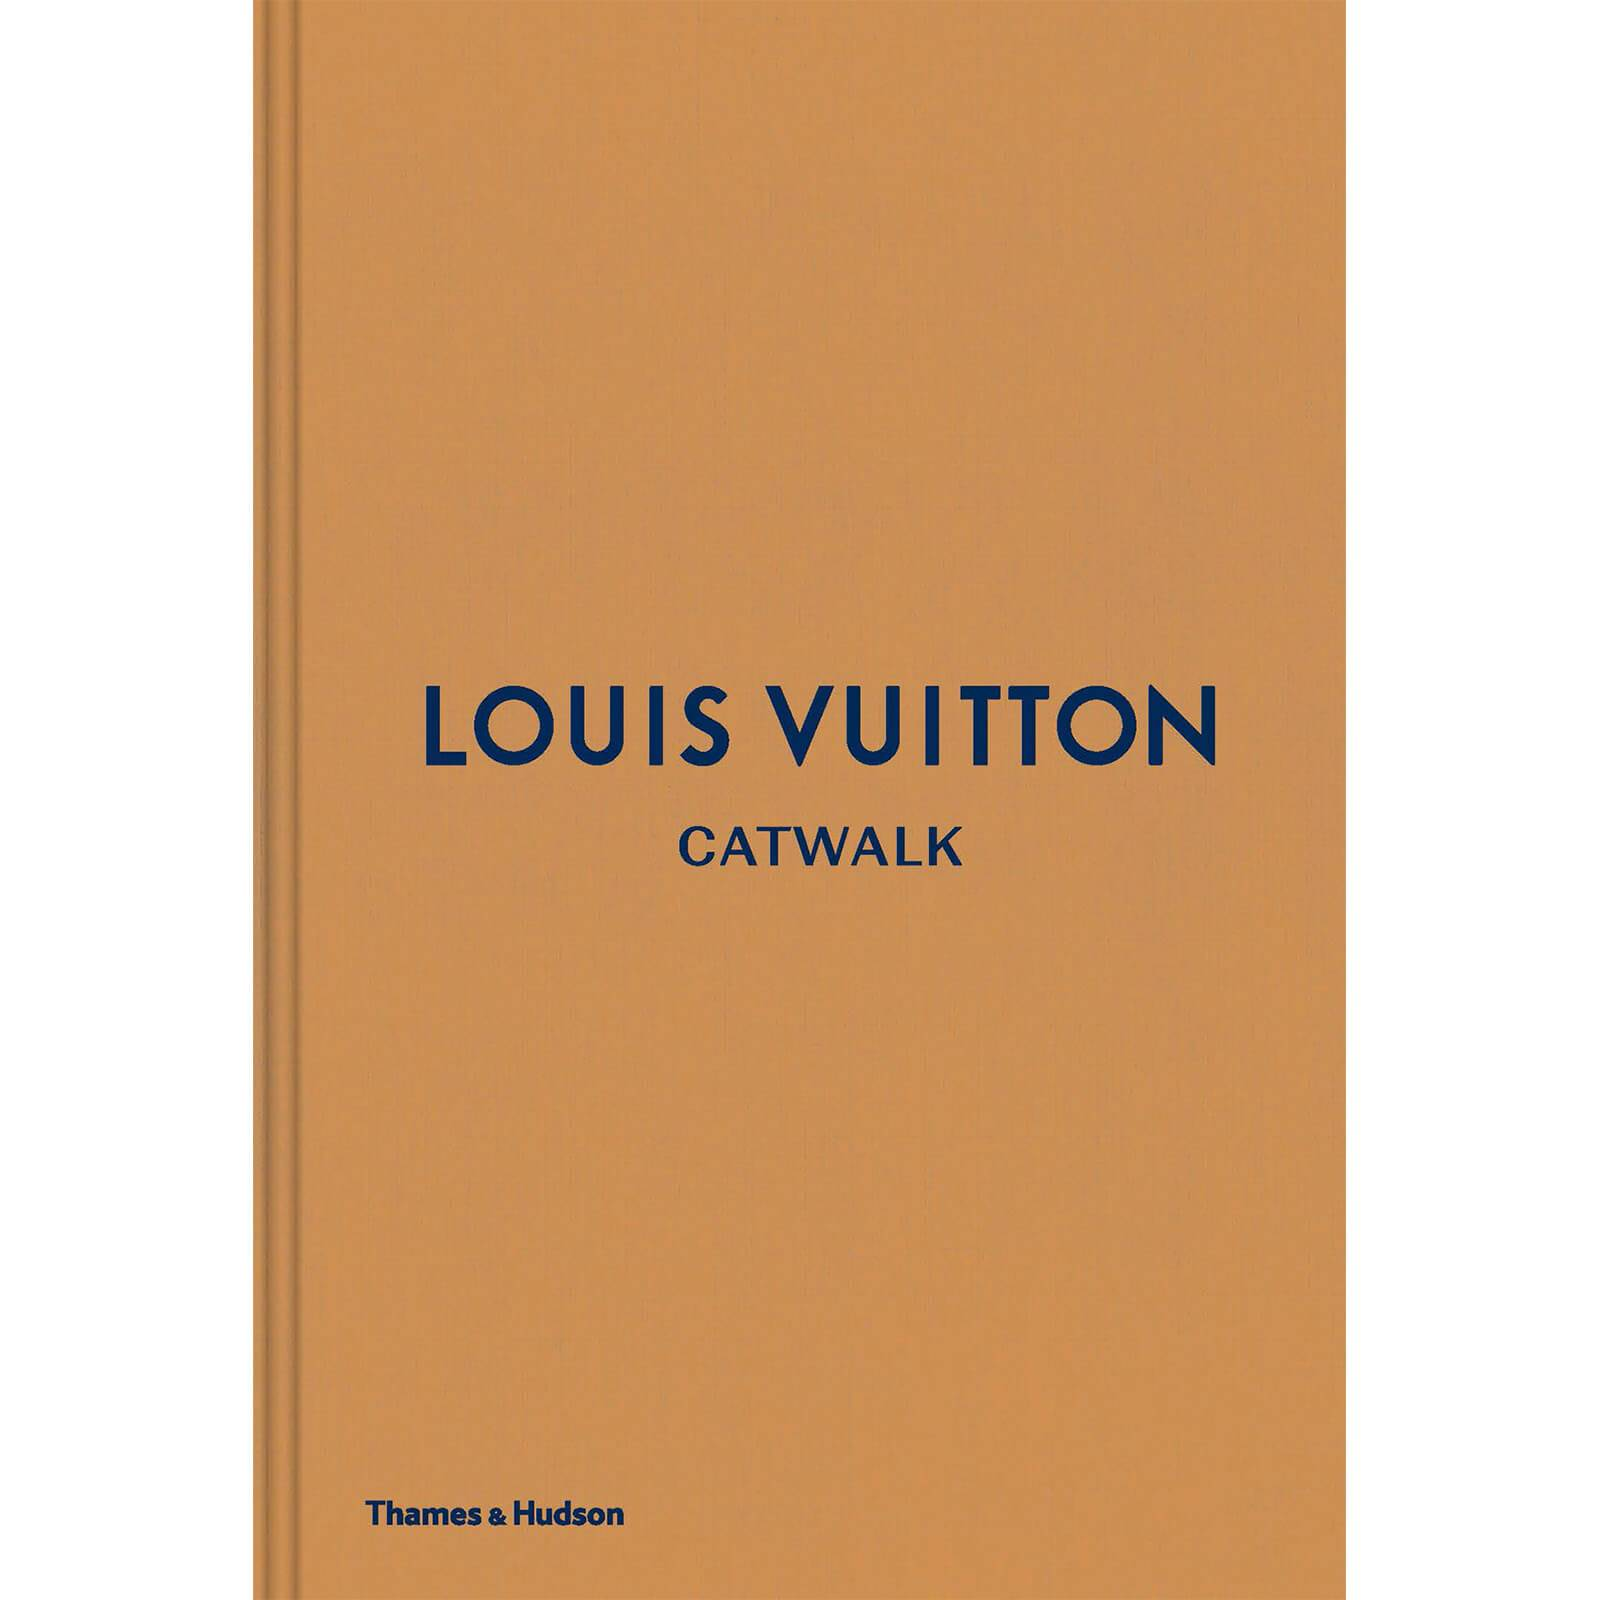 Thames and Hudson Ltd: Louis Vuitton Catwalk - The Complete Fashion Collections